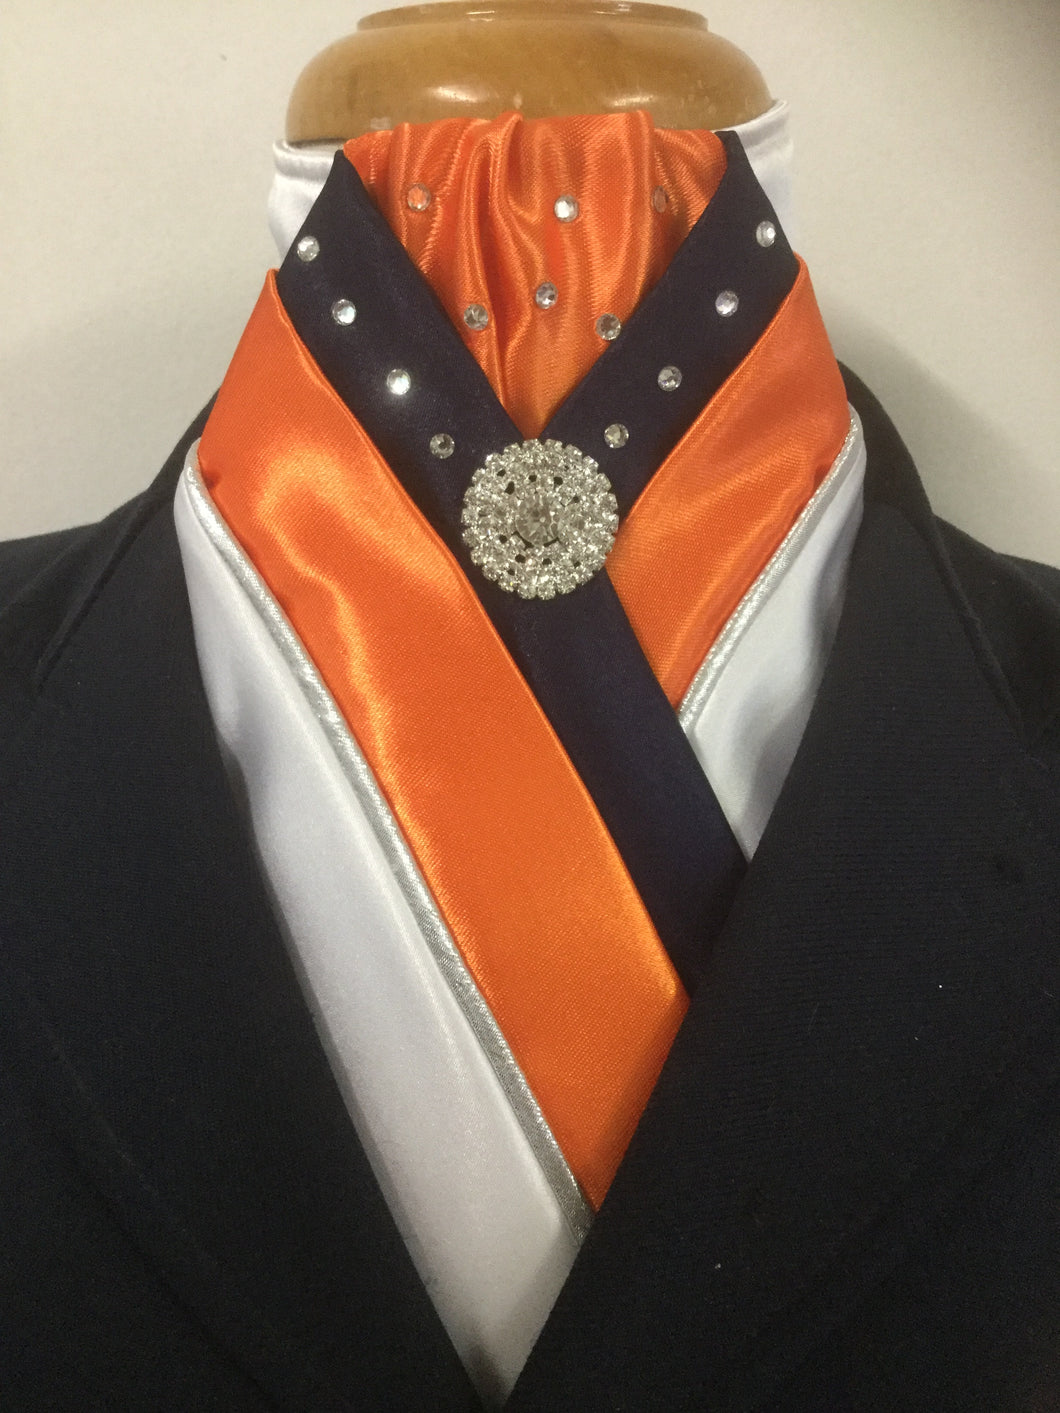 HHD 'The Royal' Equestrian Stock Tie White, Navy Blue & Orange,Silver Piping & Swarovski Elements